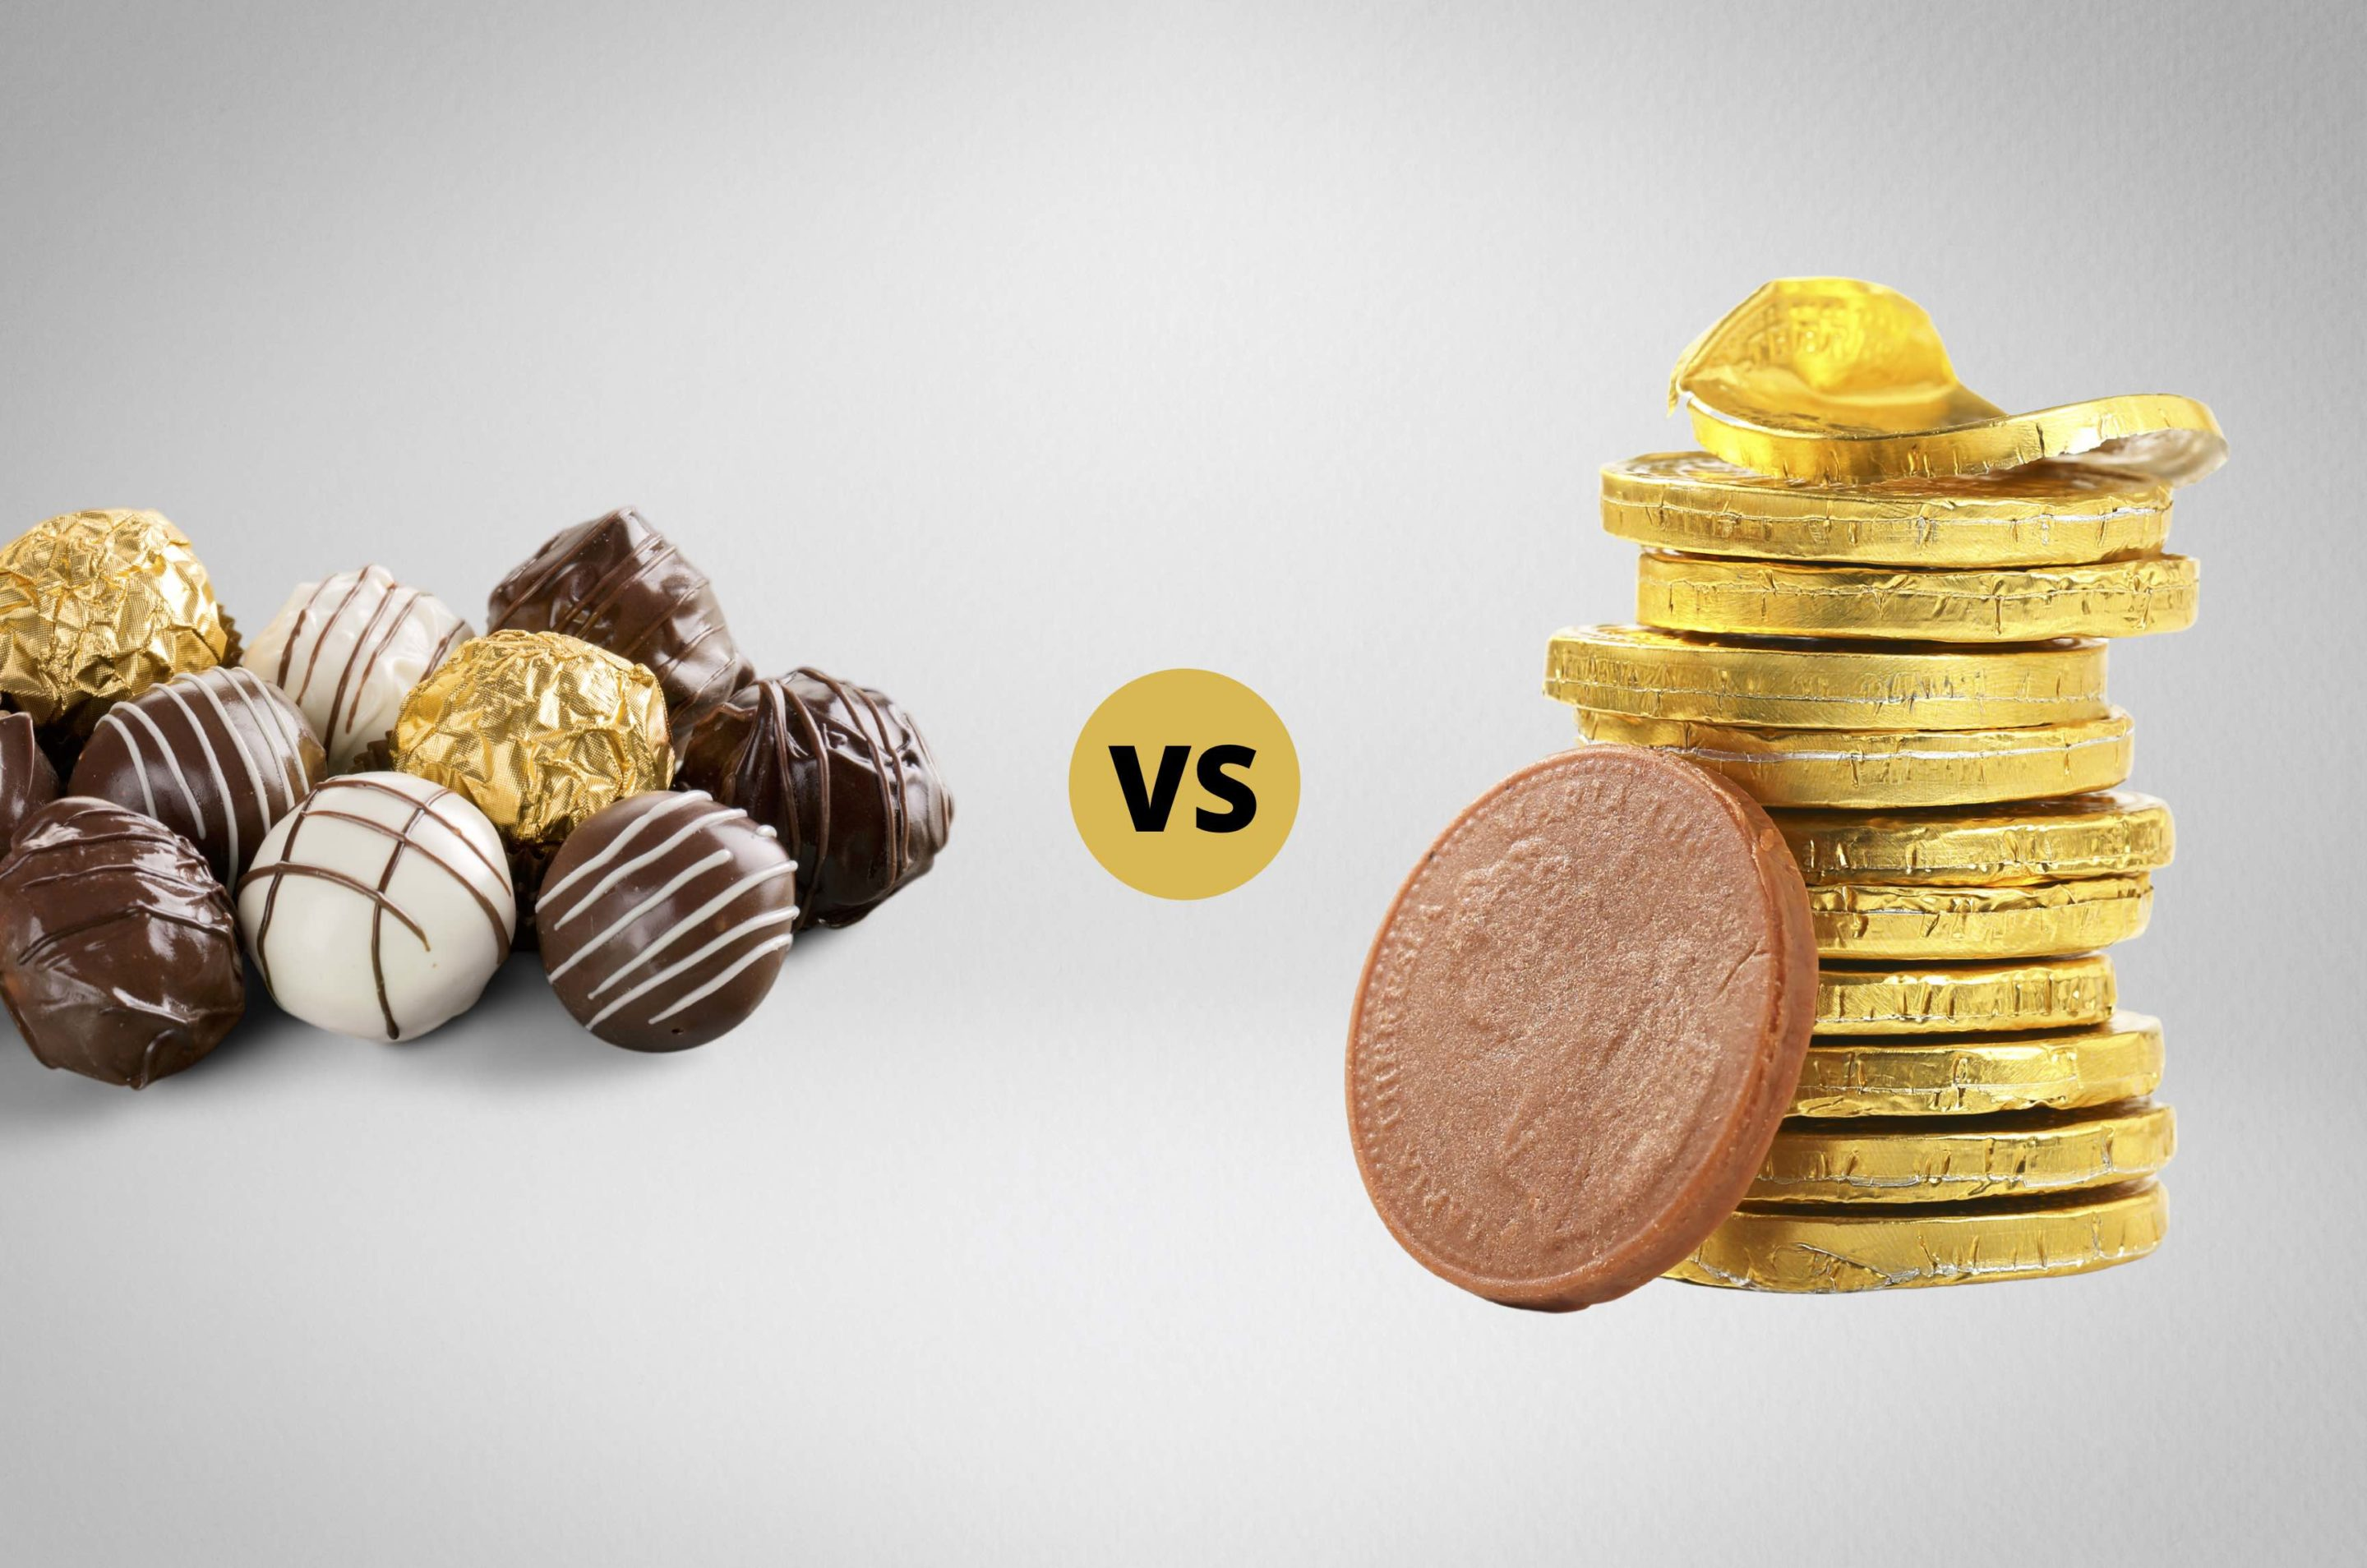 couverture vs compound Chocolate